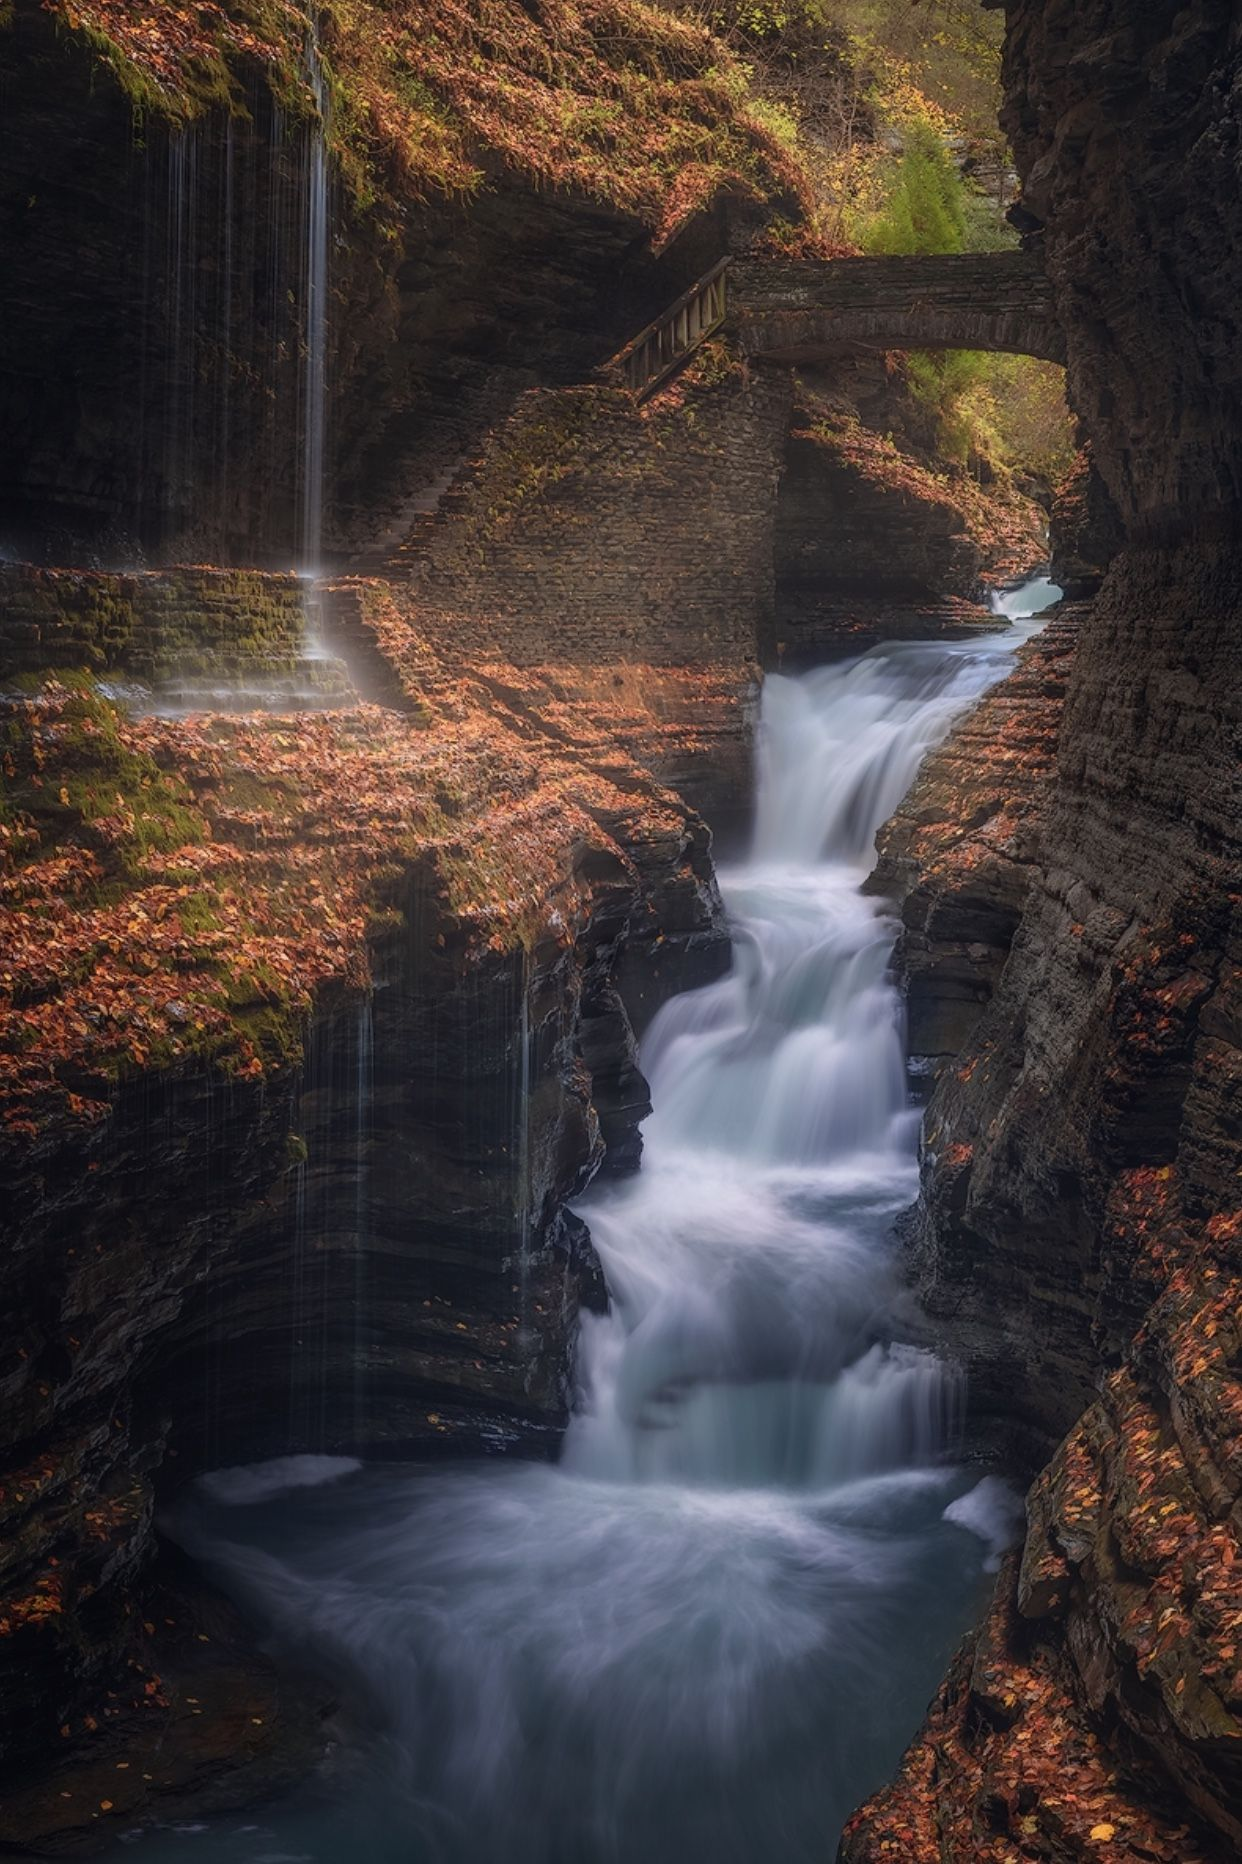 Waterfalls Dreamy Landscape Finger Lakes New York Fall Autumnscapes Upstate New York Photography W In 2020 Nature Photography Dreamy Landscapes Photography